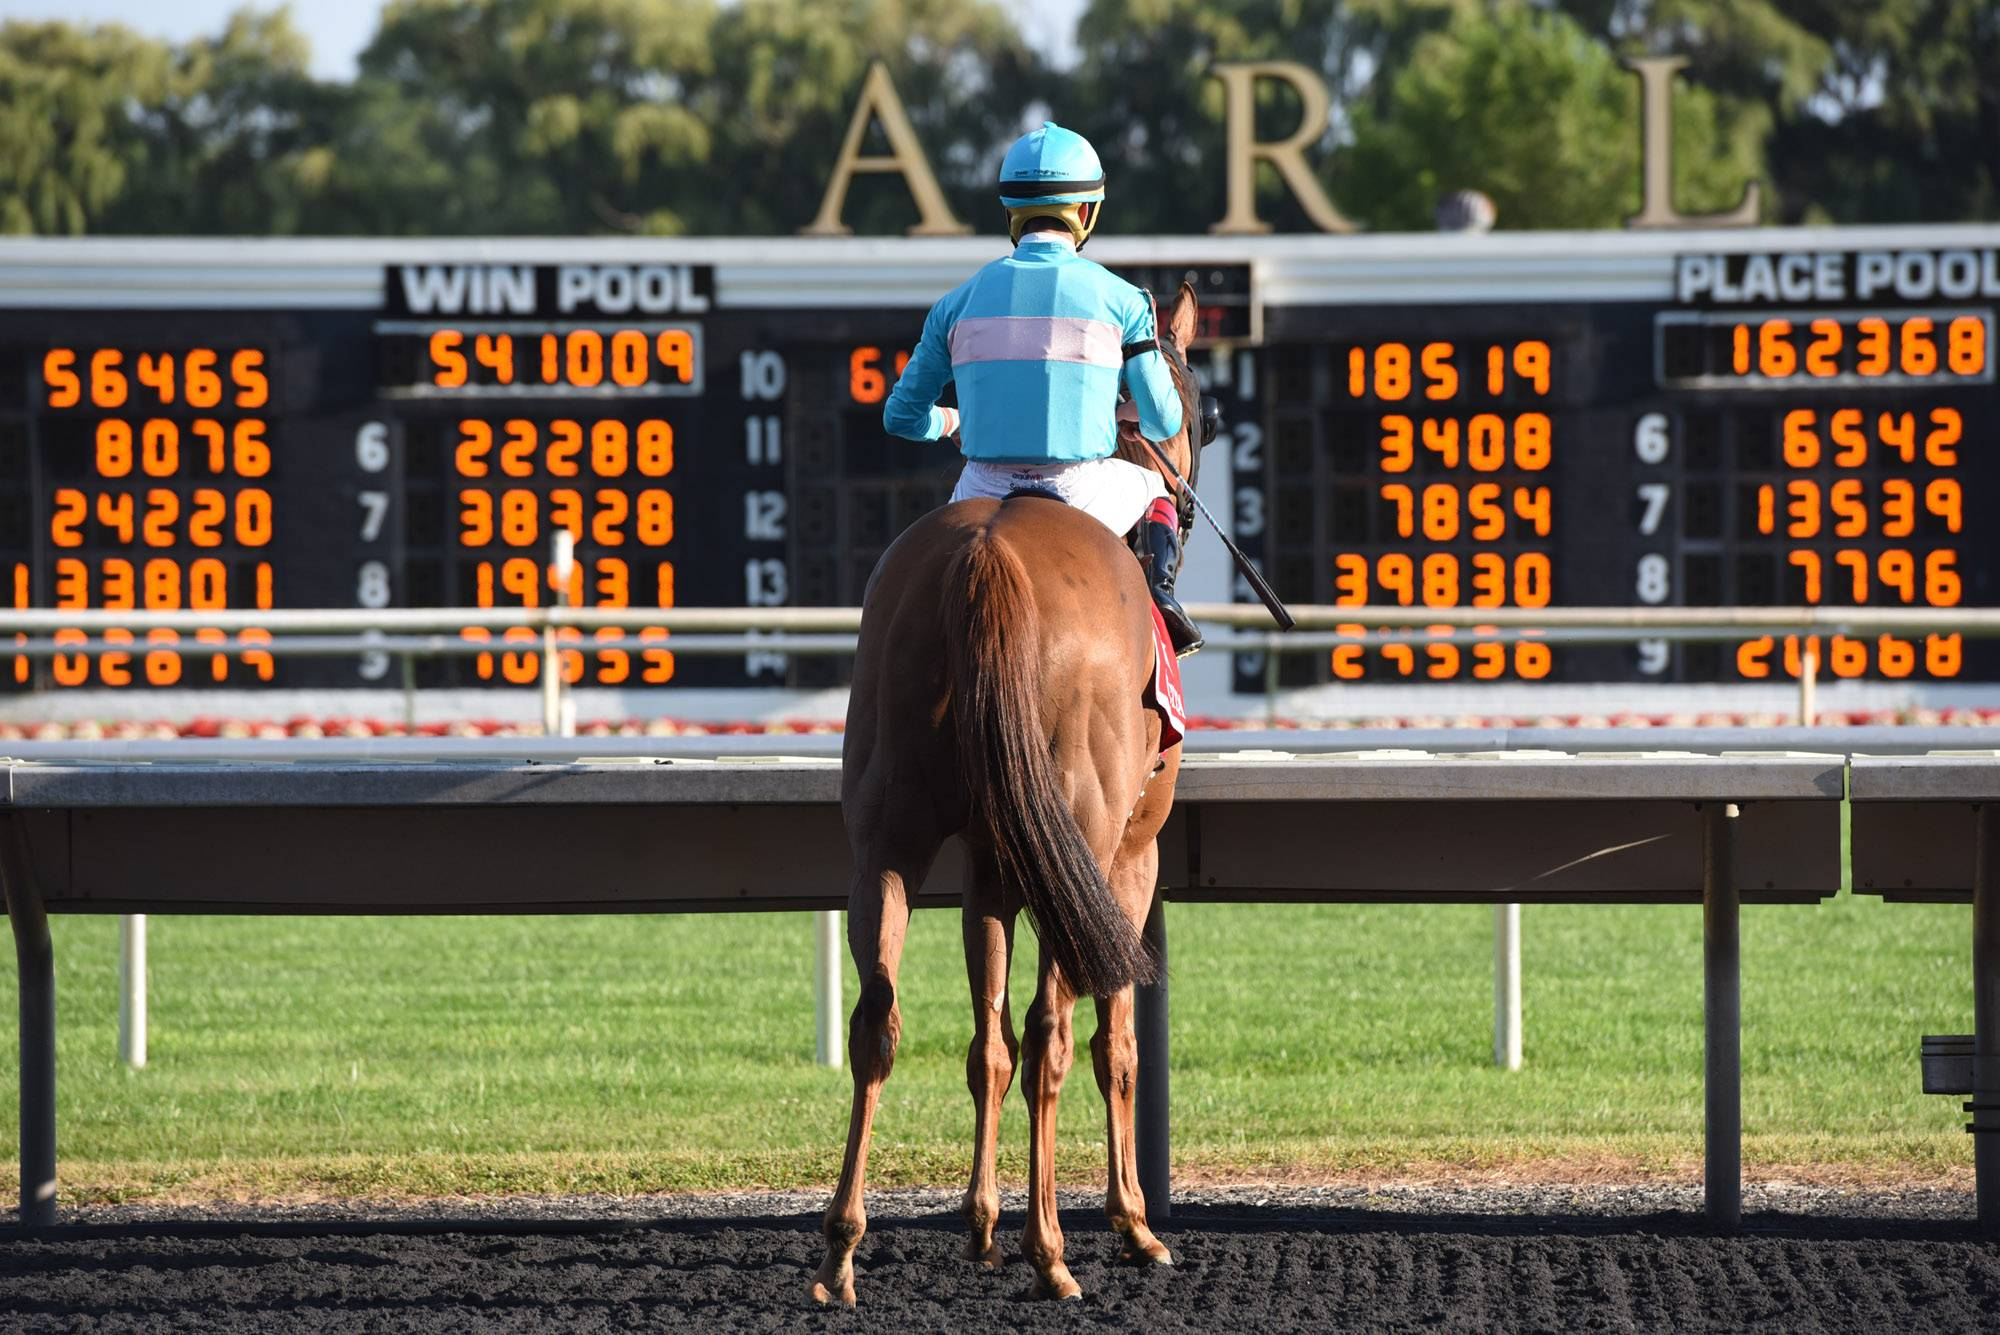 John Starks/jstarks@dailyherald.comJockey Irod Ortiz, Jr. sits on Dacita and looks at the results of The Beverly D. after his win in the $600,000 stakes race at the Arlington International Racecourse in Arlington Heights Saturday.